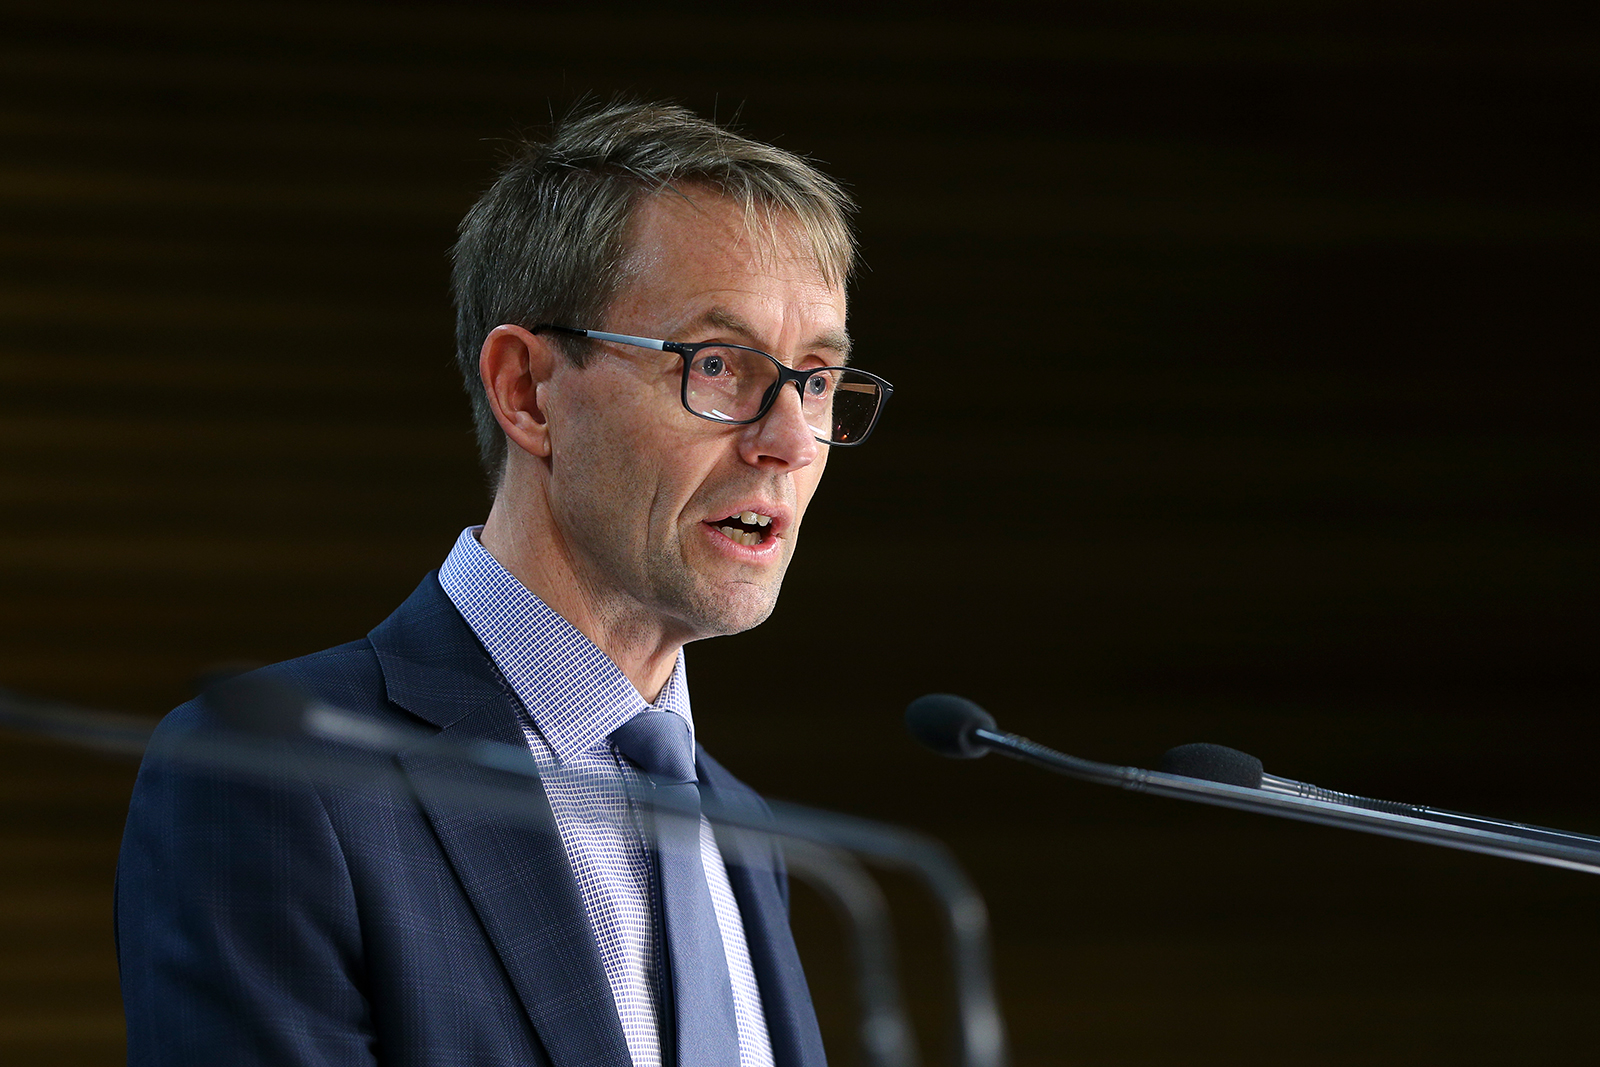 Director-General of Health Dr. Ashley Bloomfield speaks to media during a news conference at Parliament in Wellington, New Zealand on August 6.